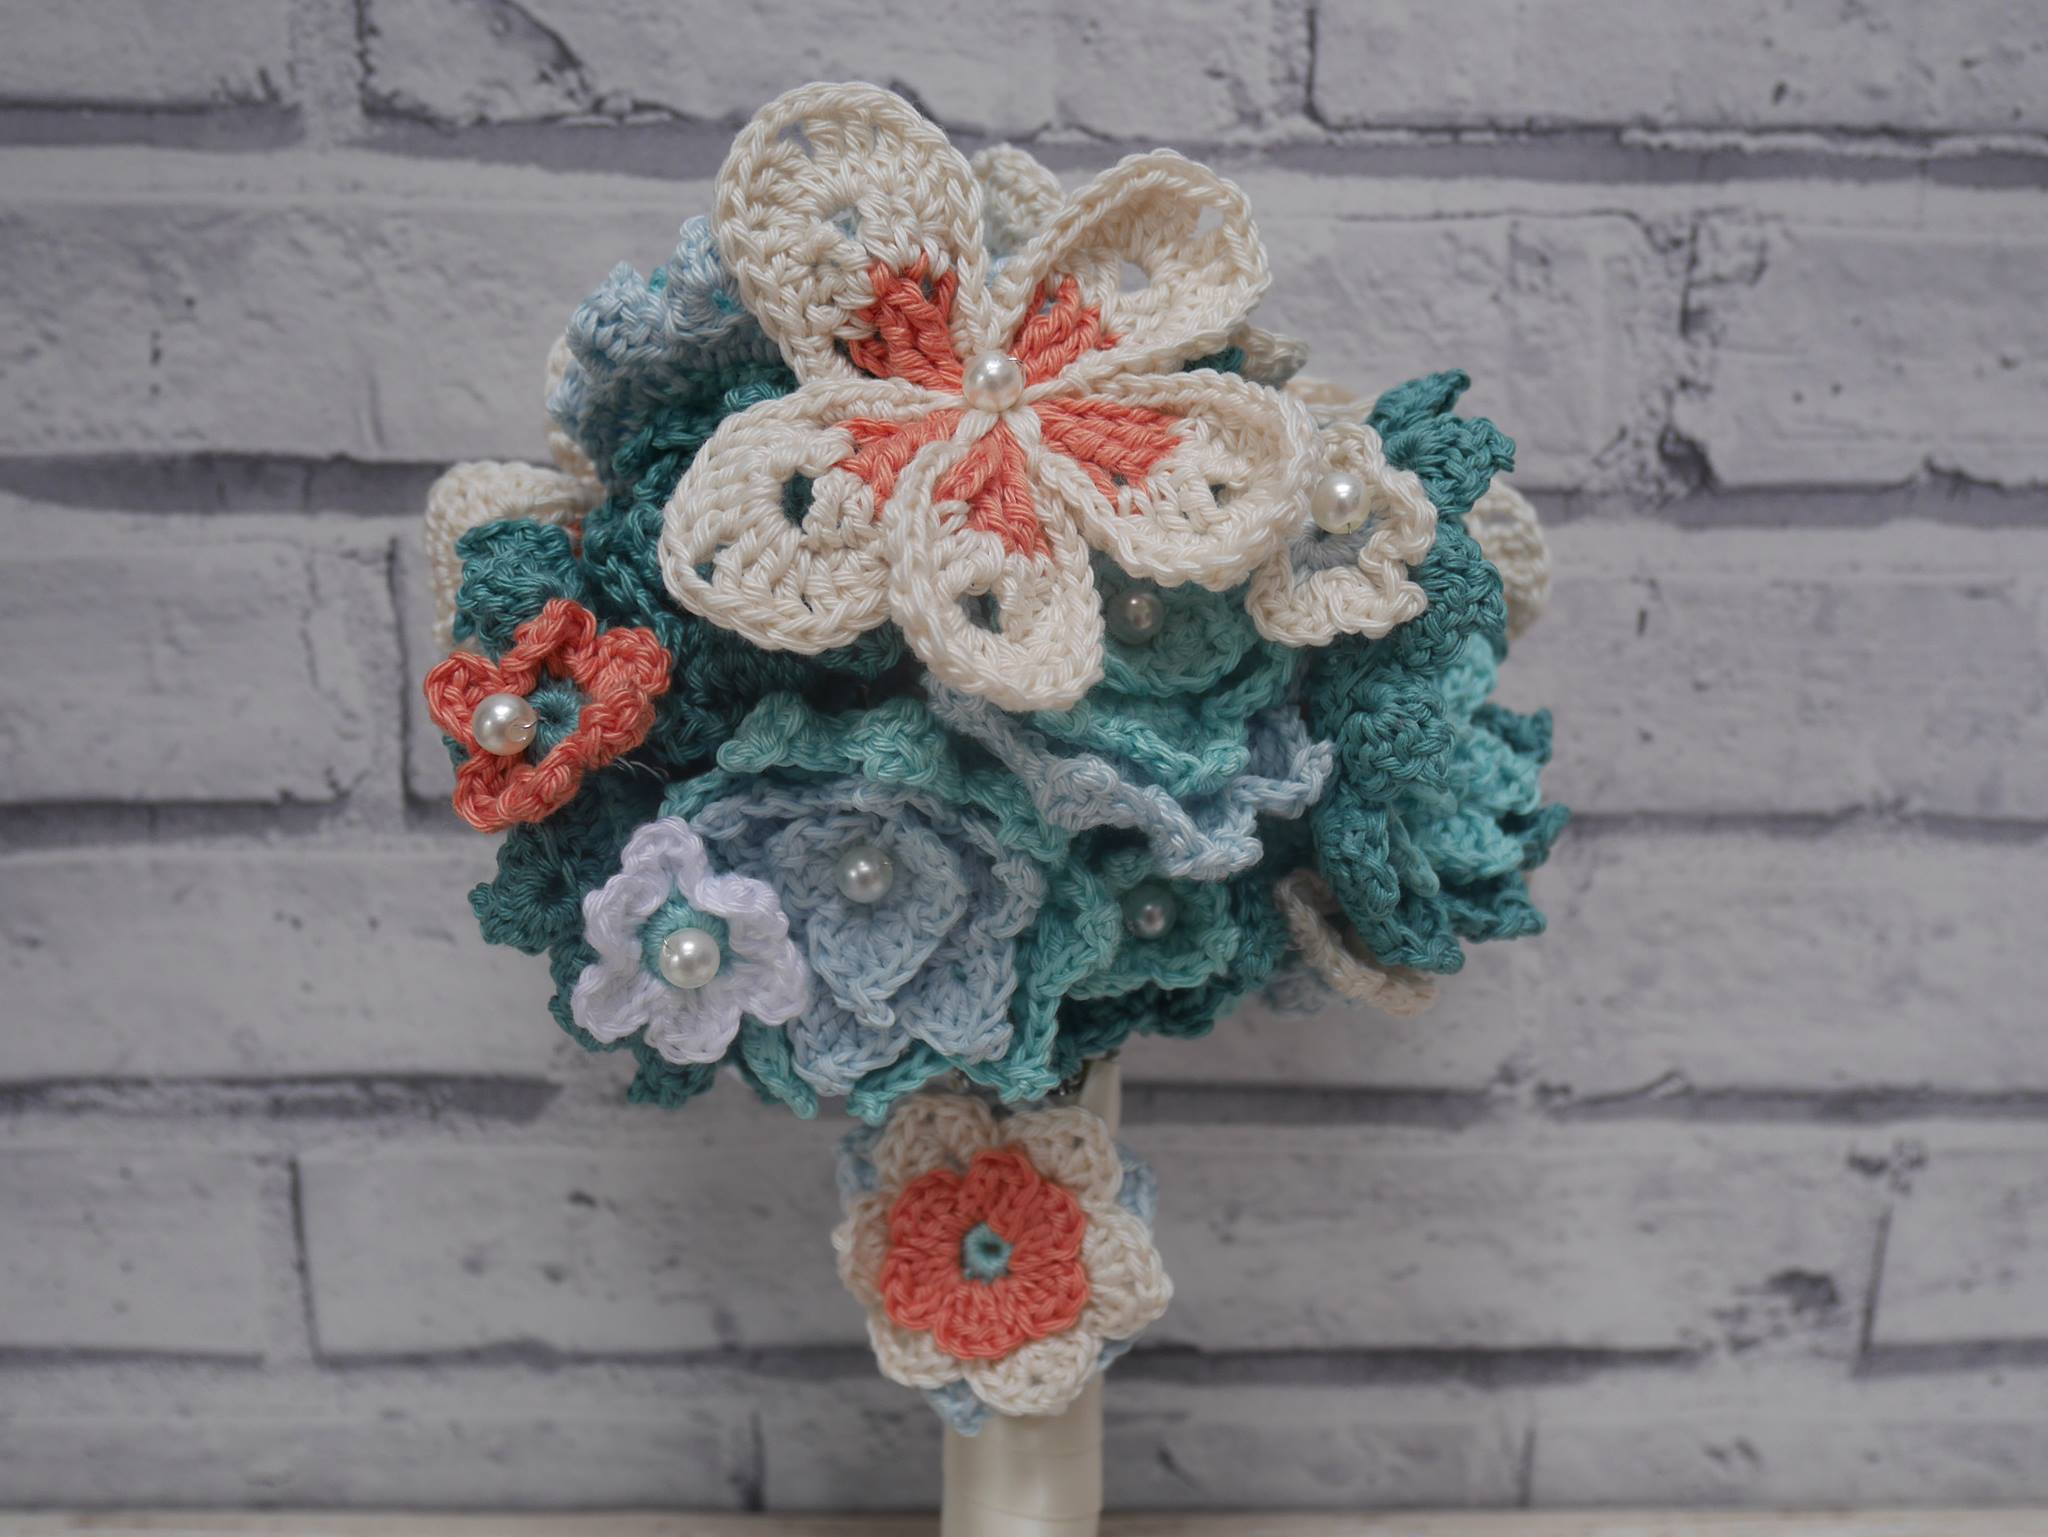 Crochet wedding bouquet - the big reveal! - Elsie Pop